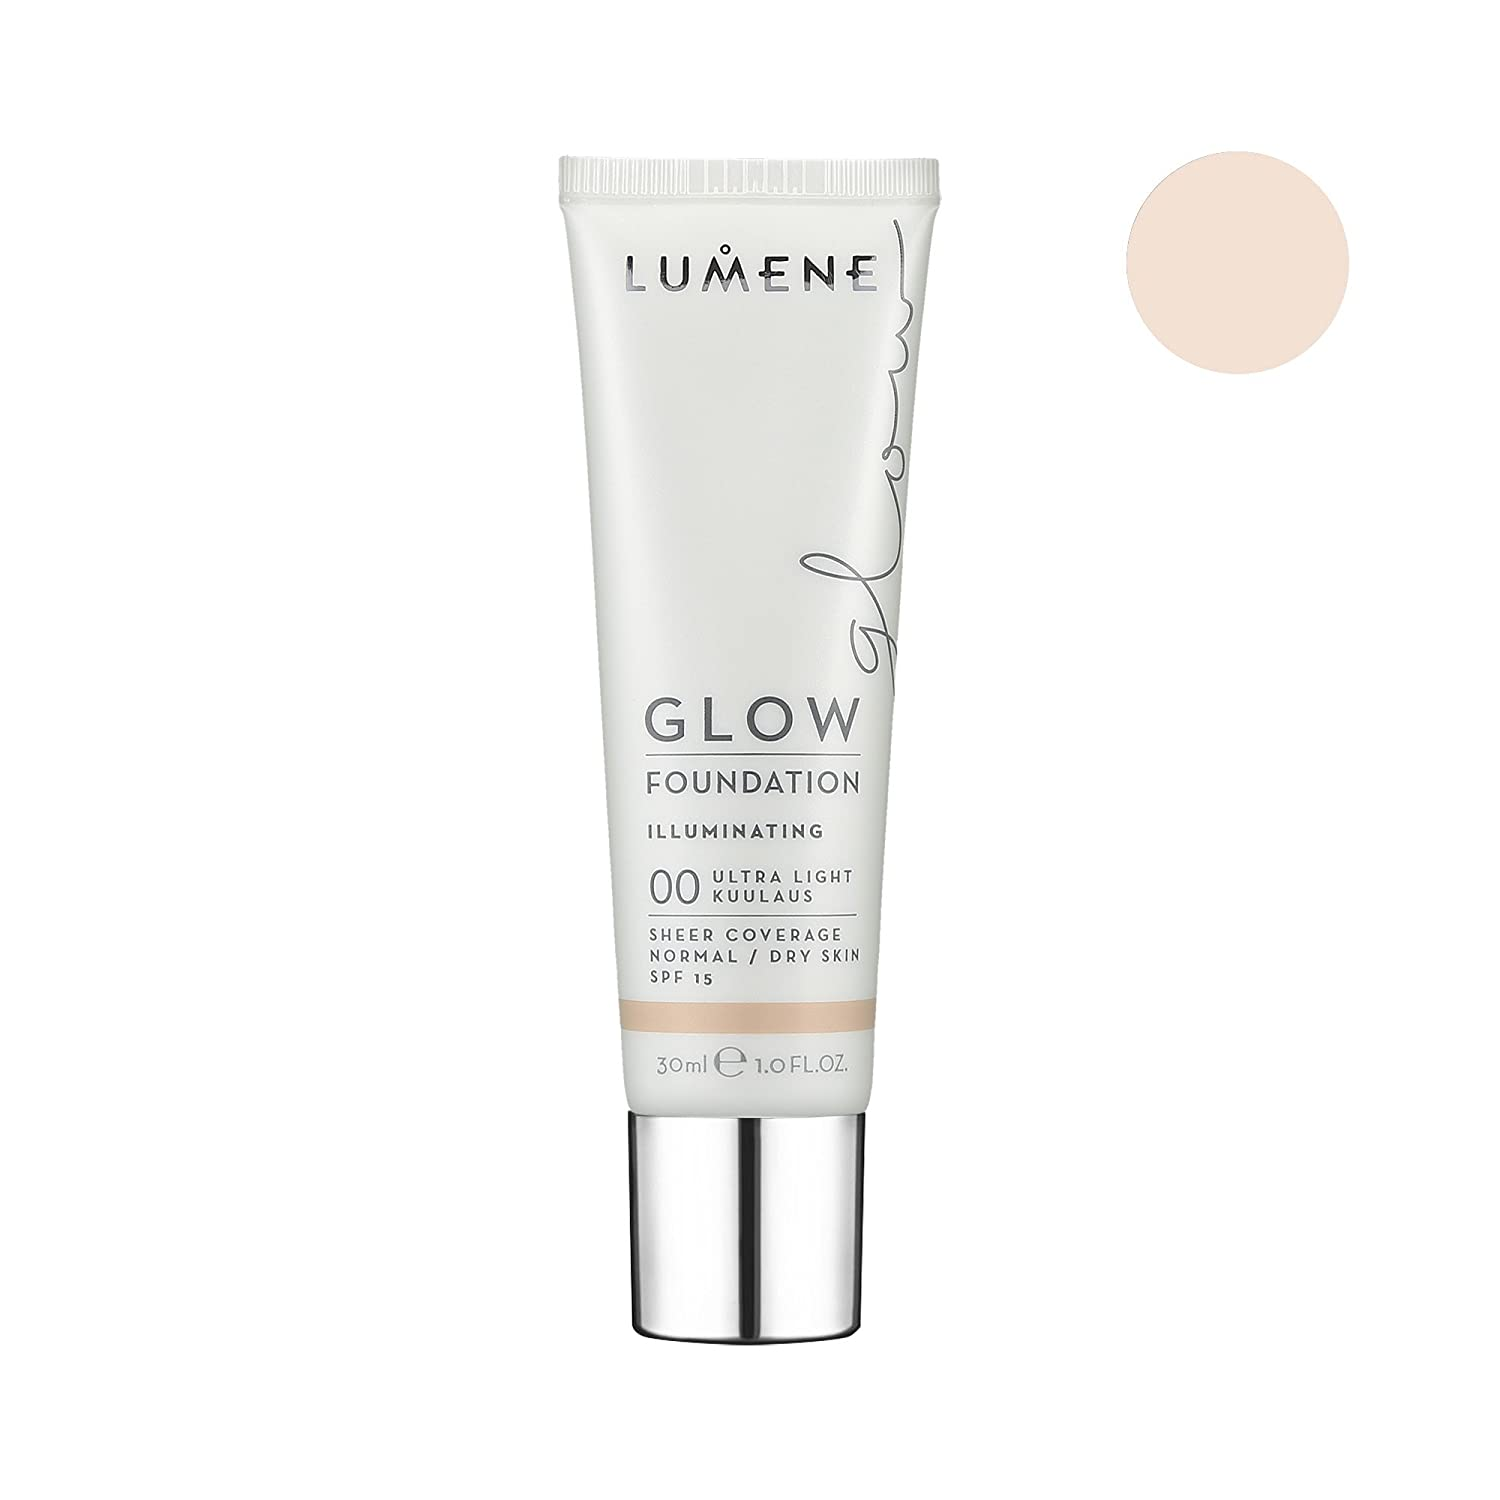 LUMENE GLOW FOUNDATION 00 ULTRA LIGHT 30ML